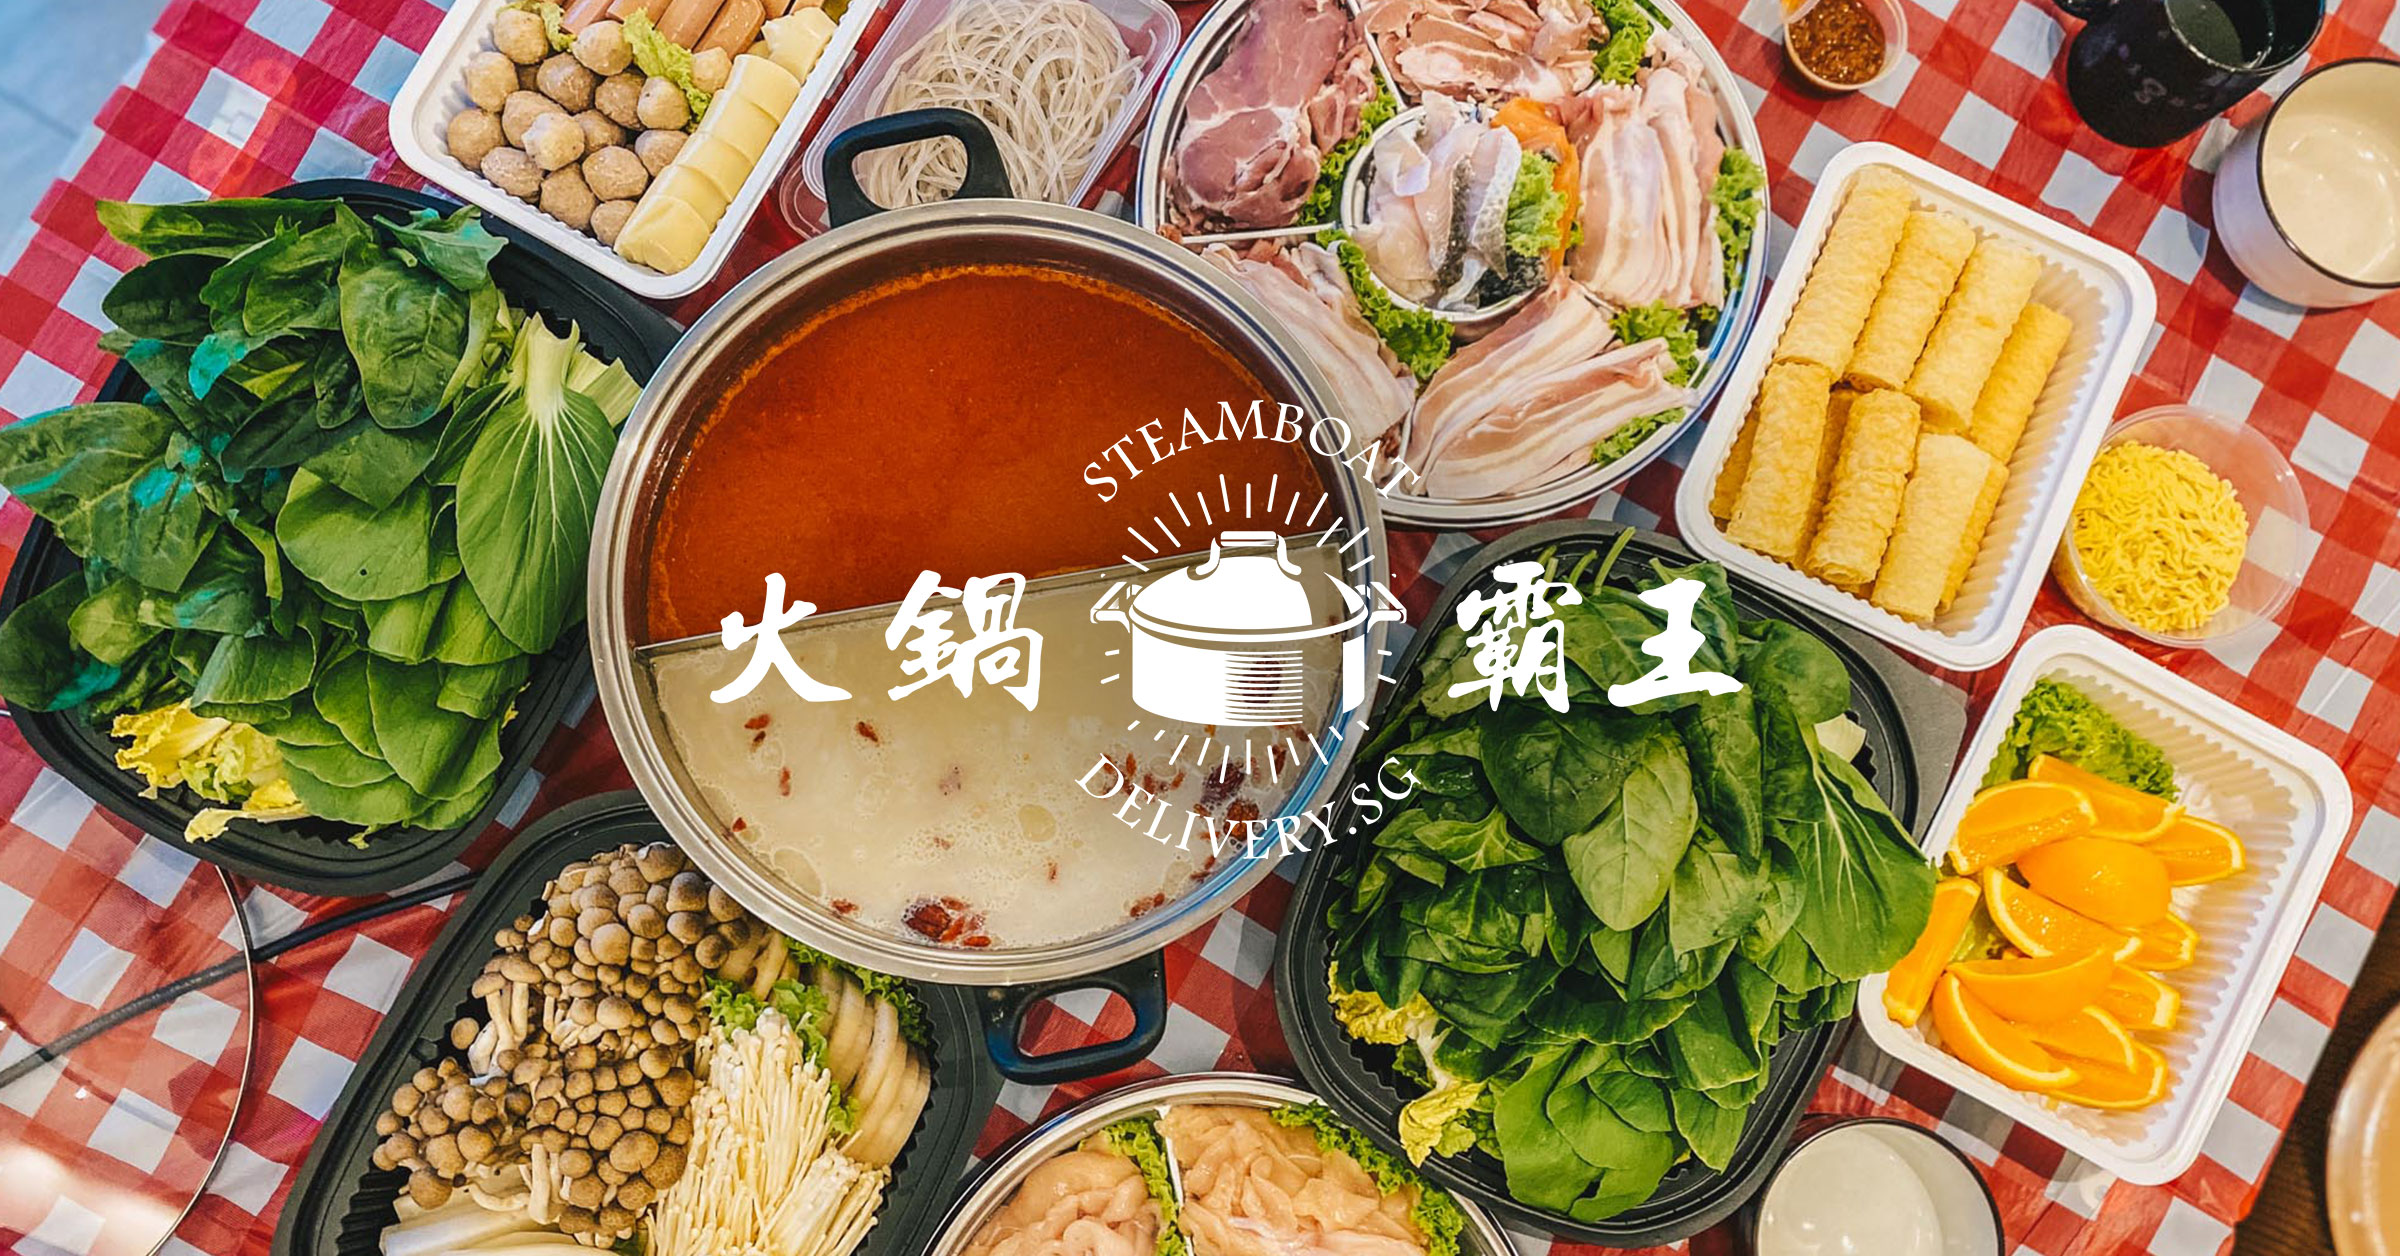 Steamboat-Delivery-darrenbloggie